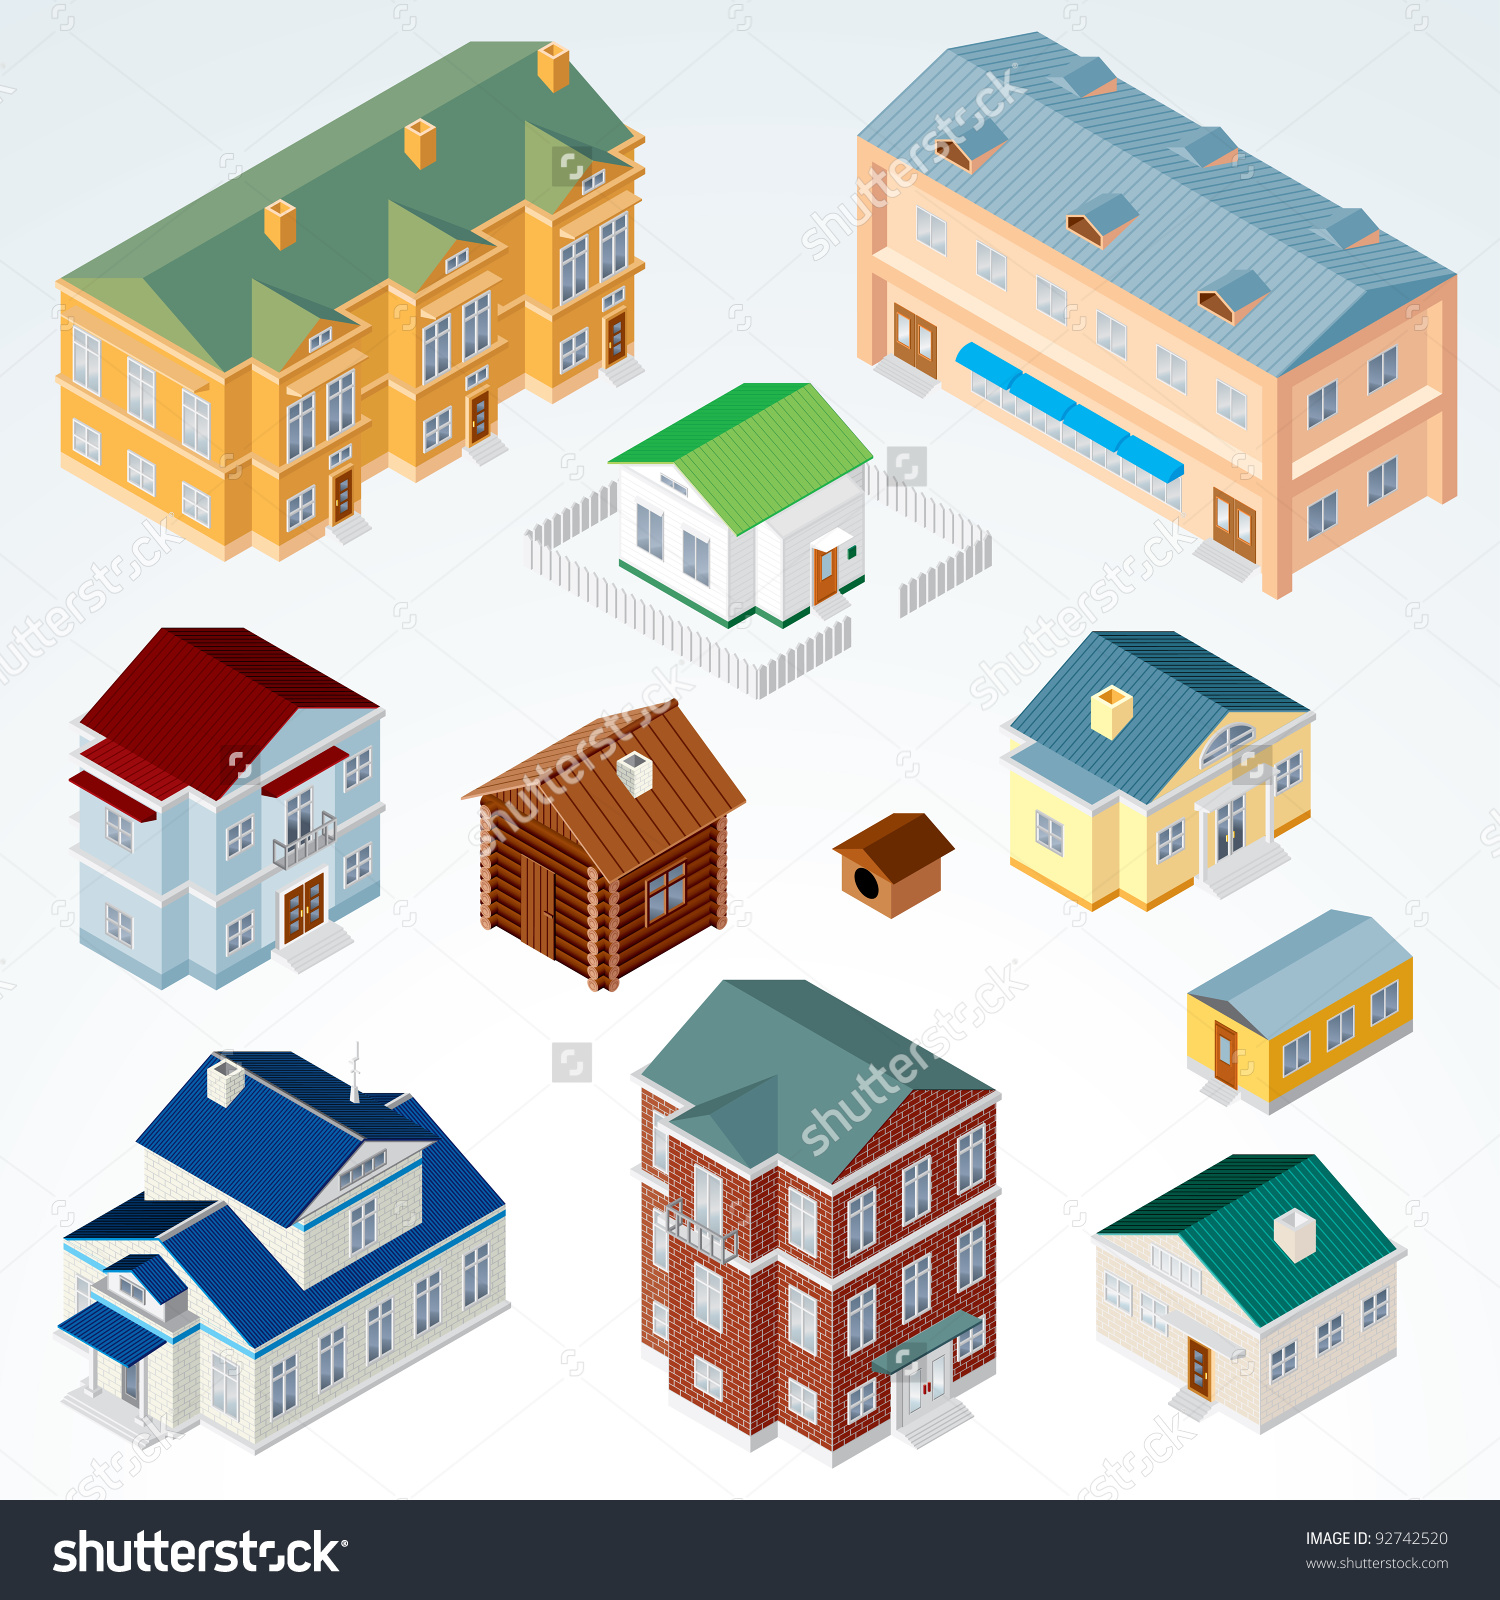 Set Isolated Isometric Buildings Illustration Various Stock Vector.